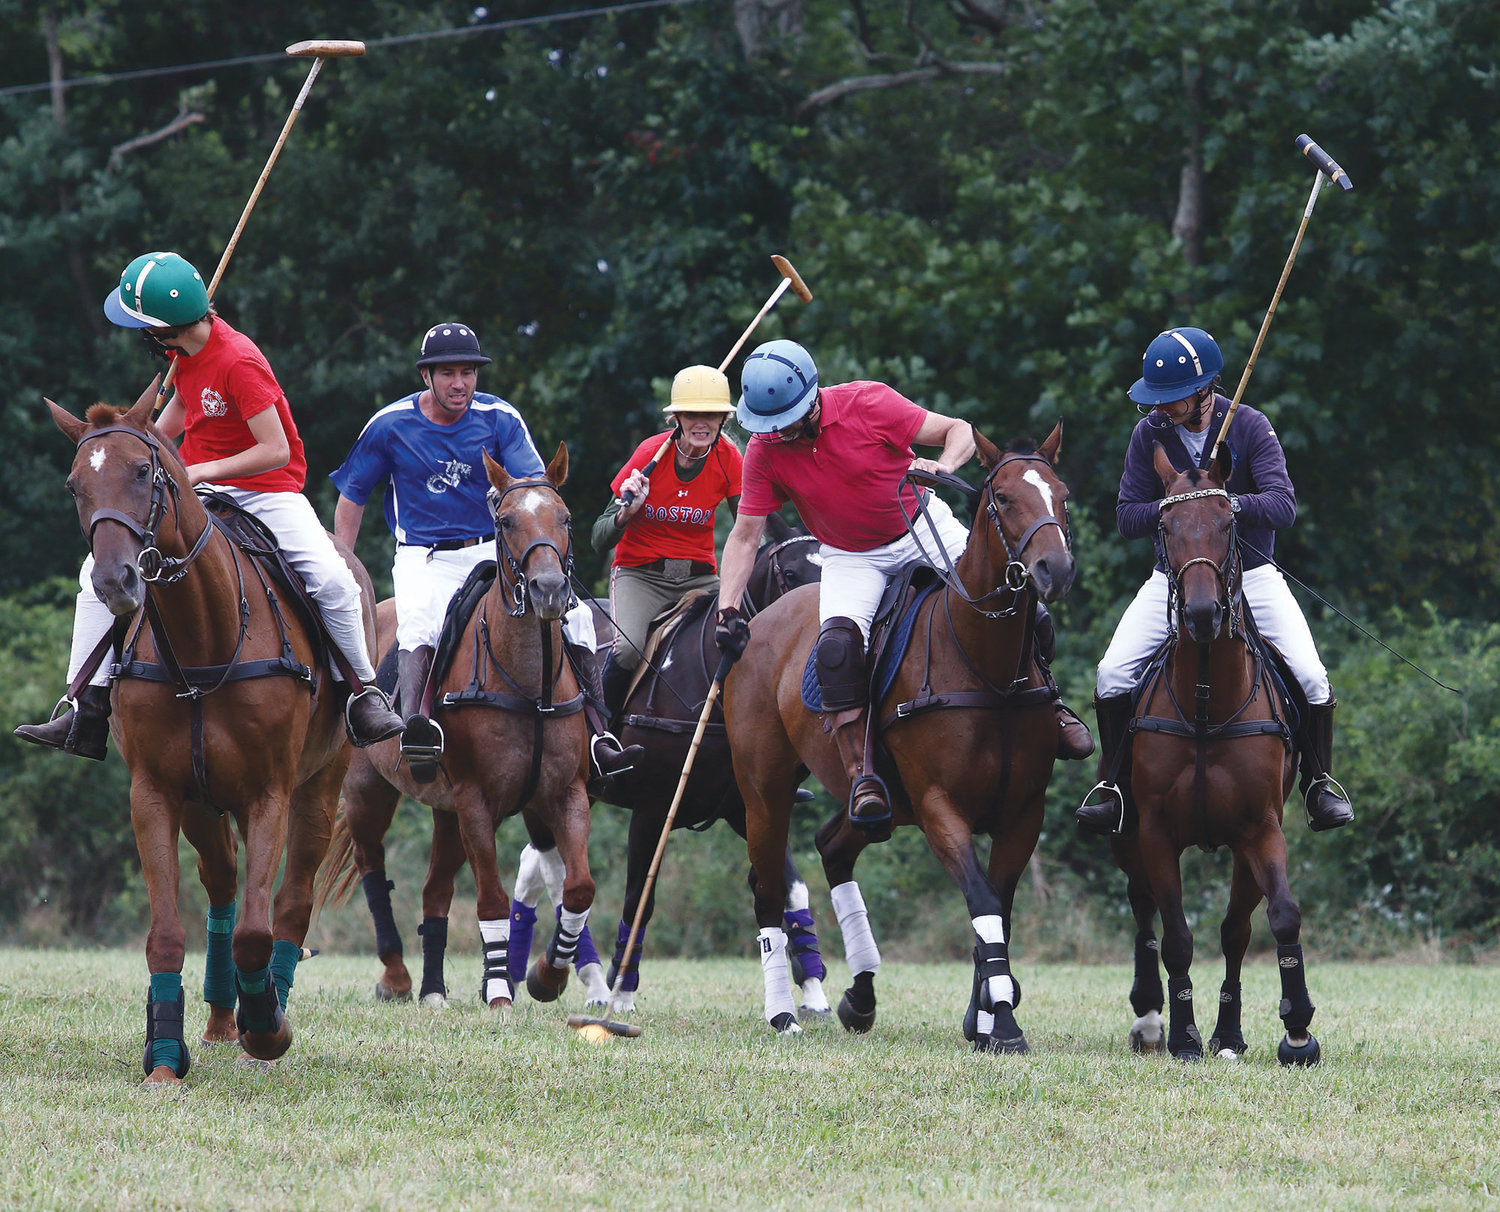 A group of players battle for control of the ball during a pickup polo match on Saturday morning at Mt. Hope Farm.